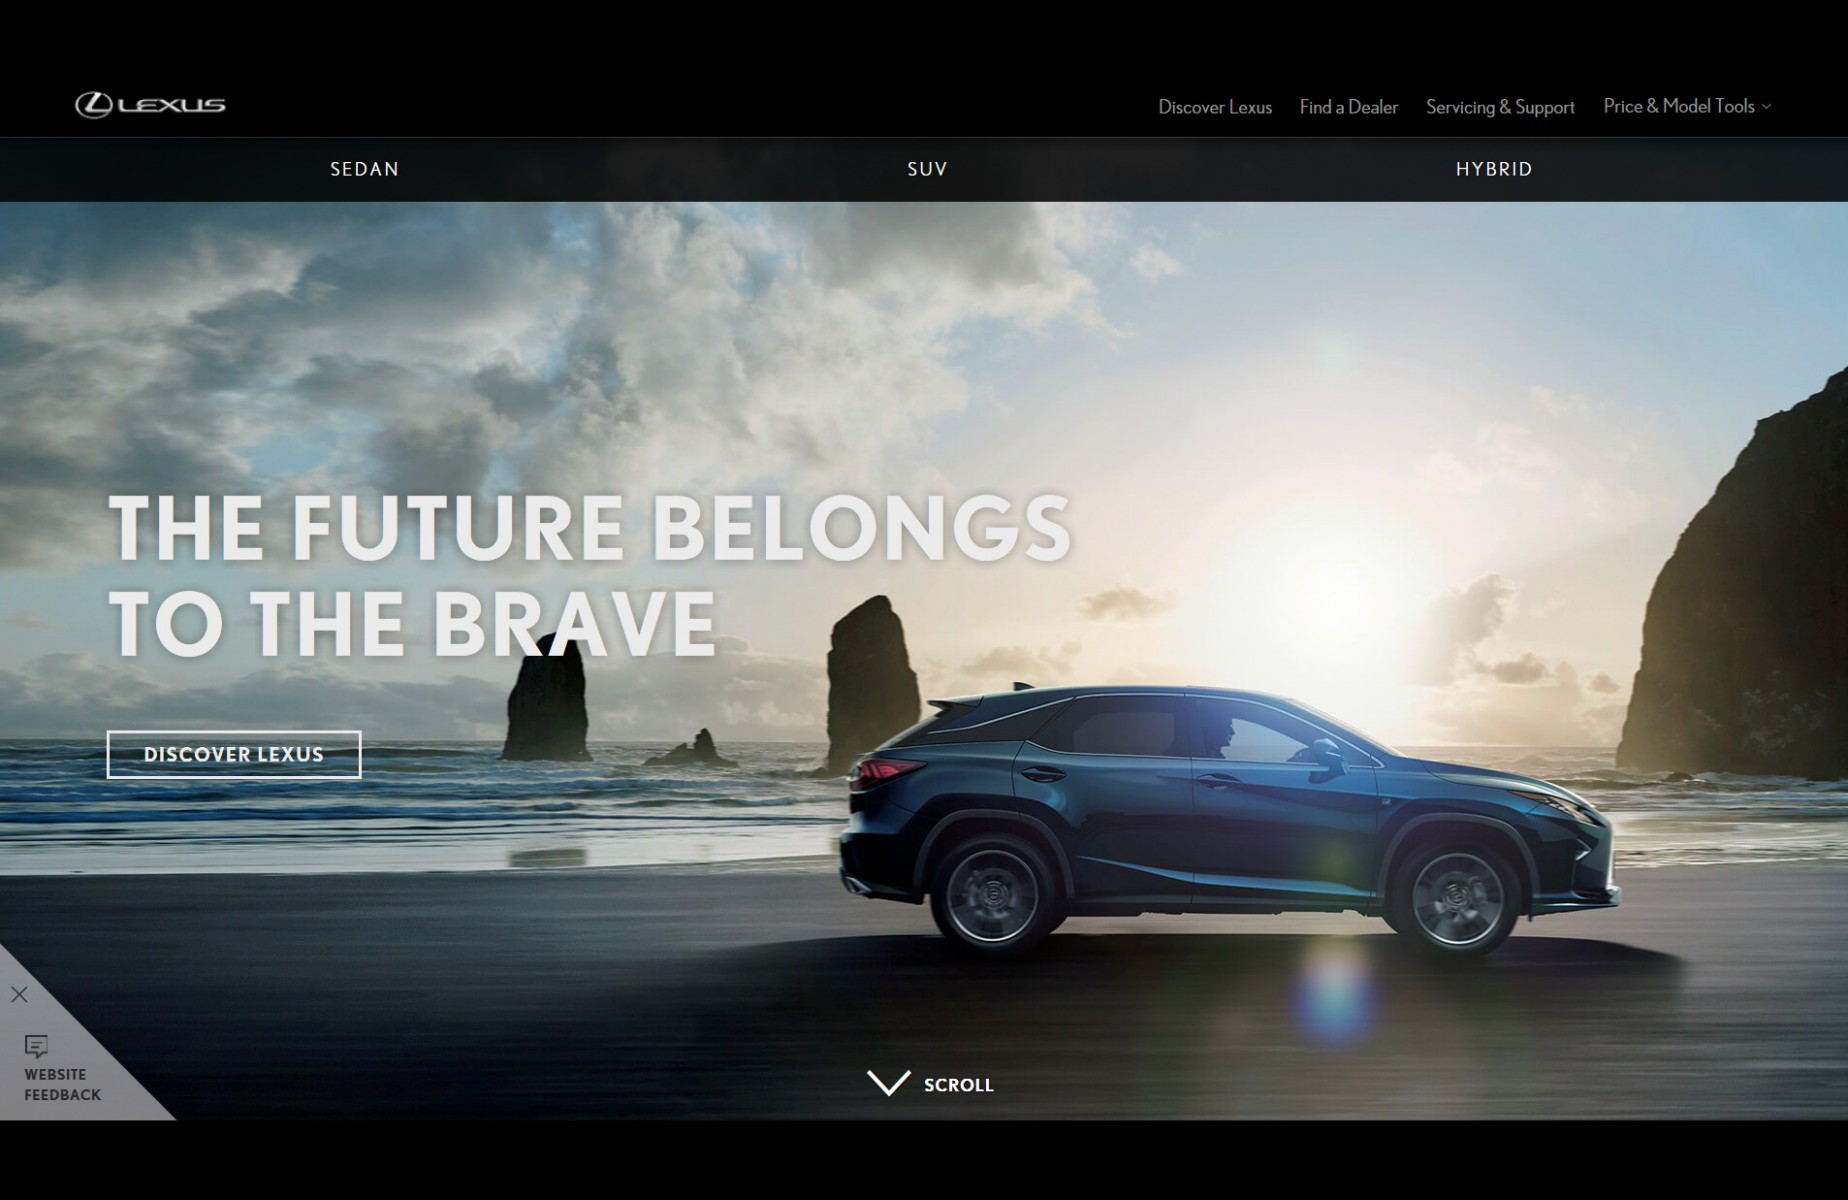 lexus india website screenshot